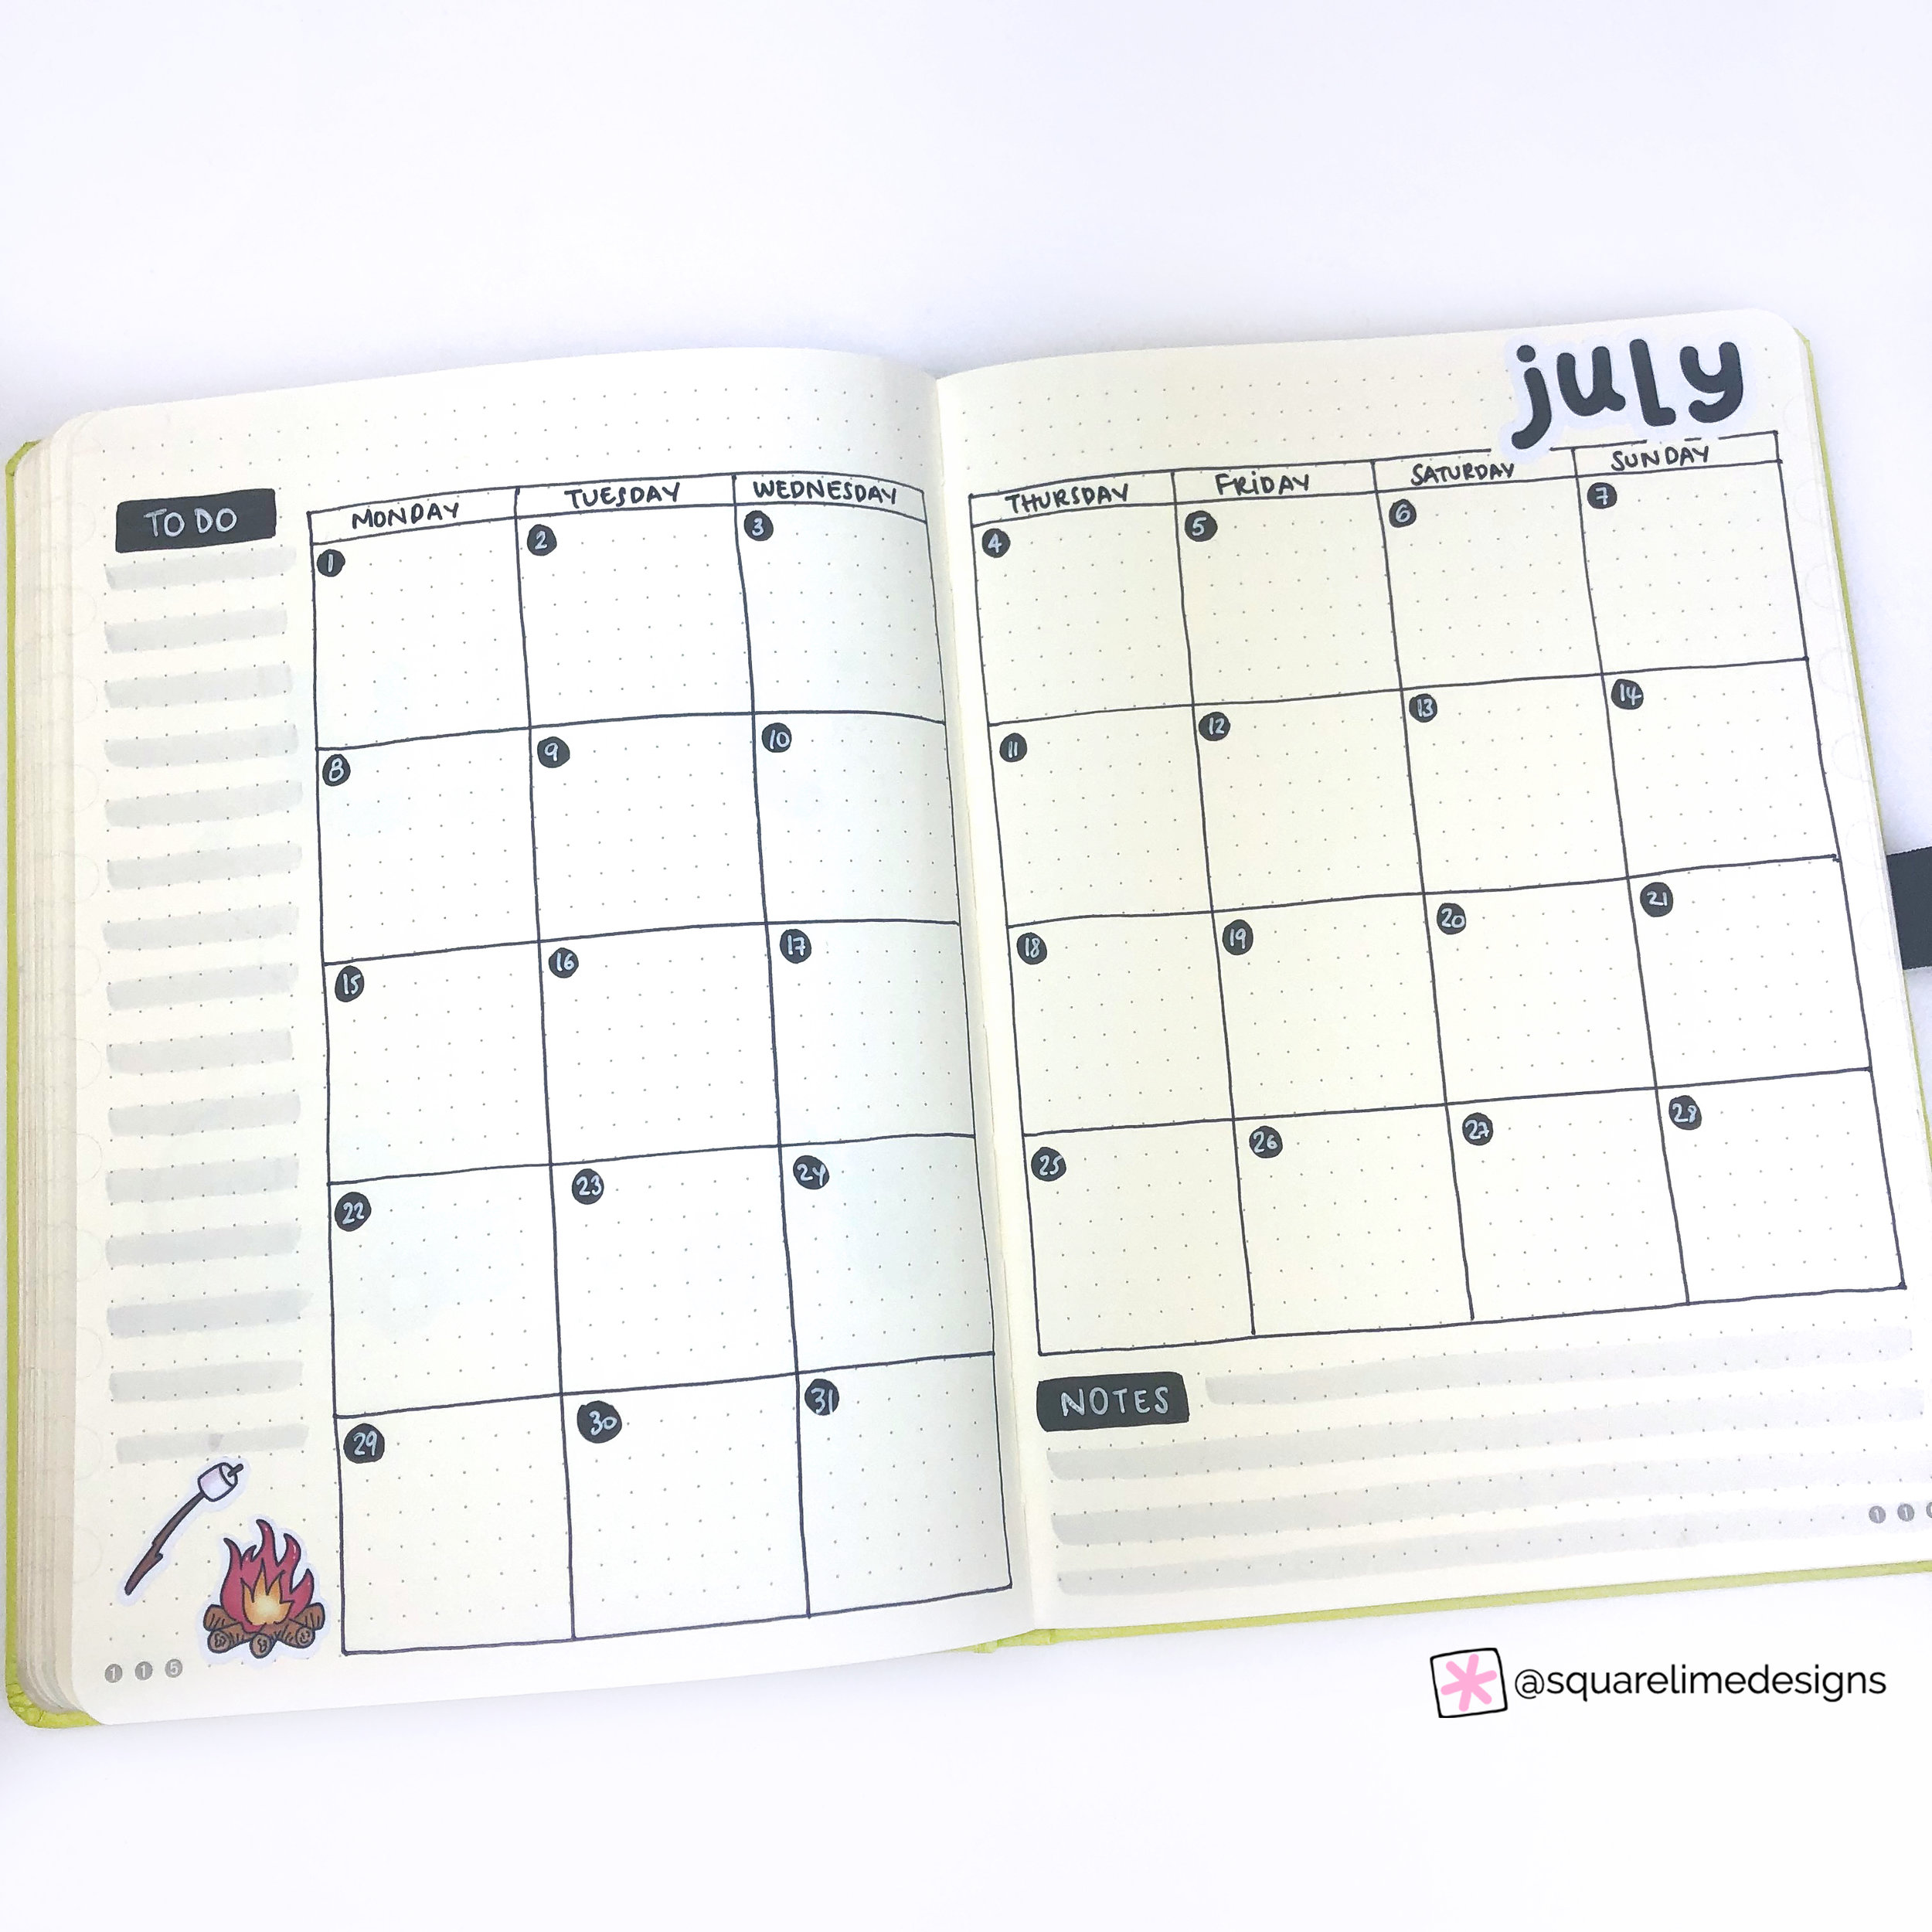 Bullet Journal Monthly Layout for July 2019 - Monthly Layout Page